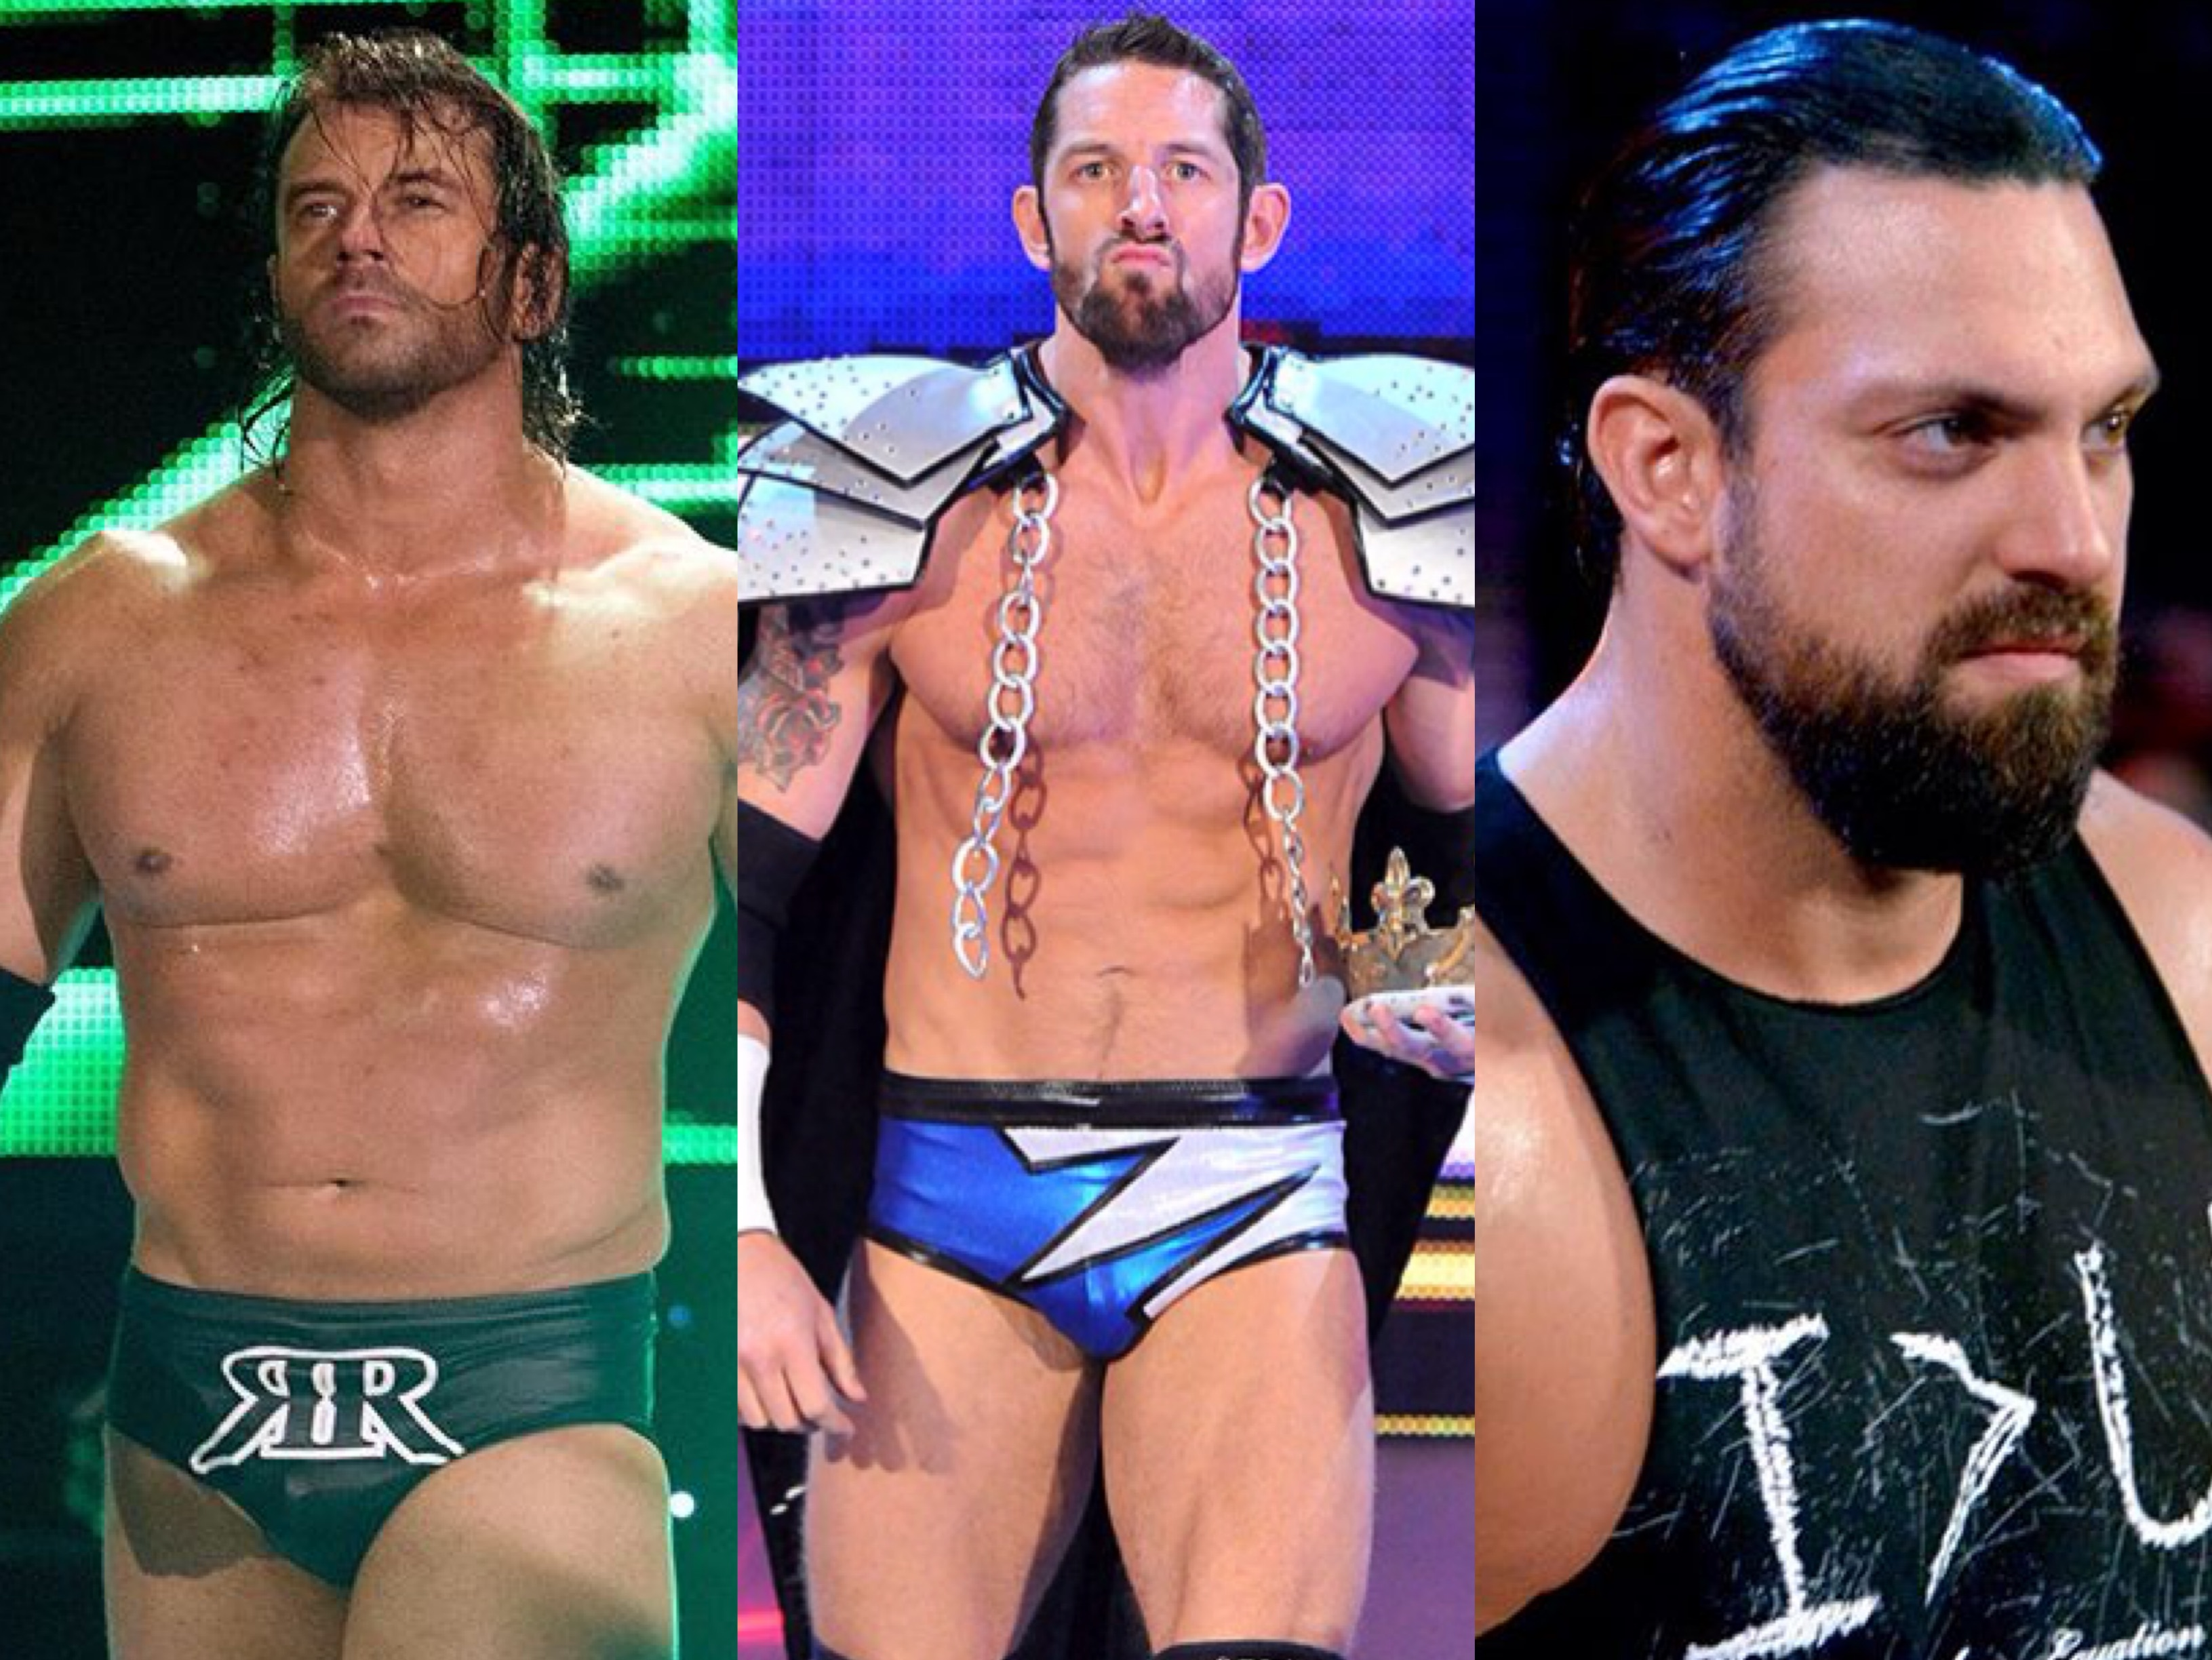 Goodbye Barrett, Riley, and Sandow